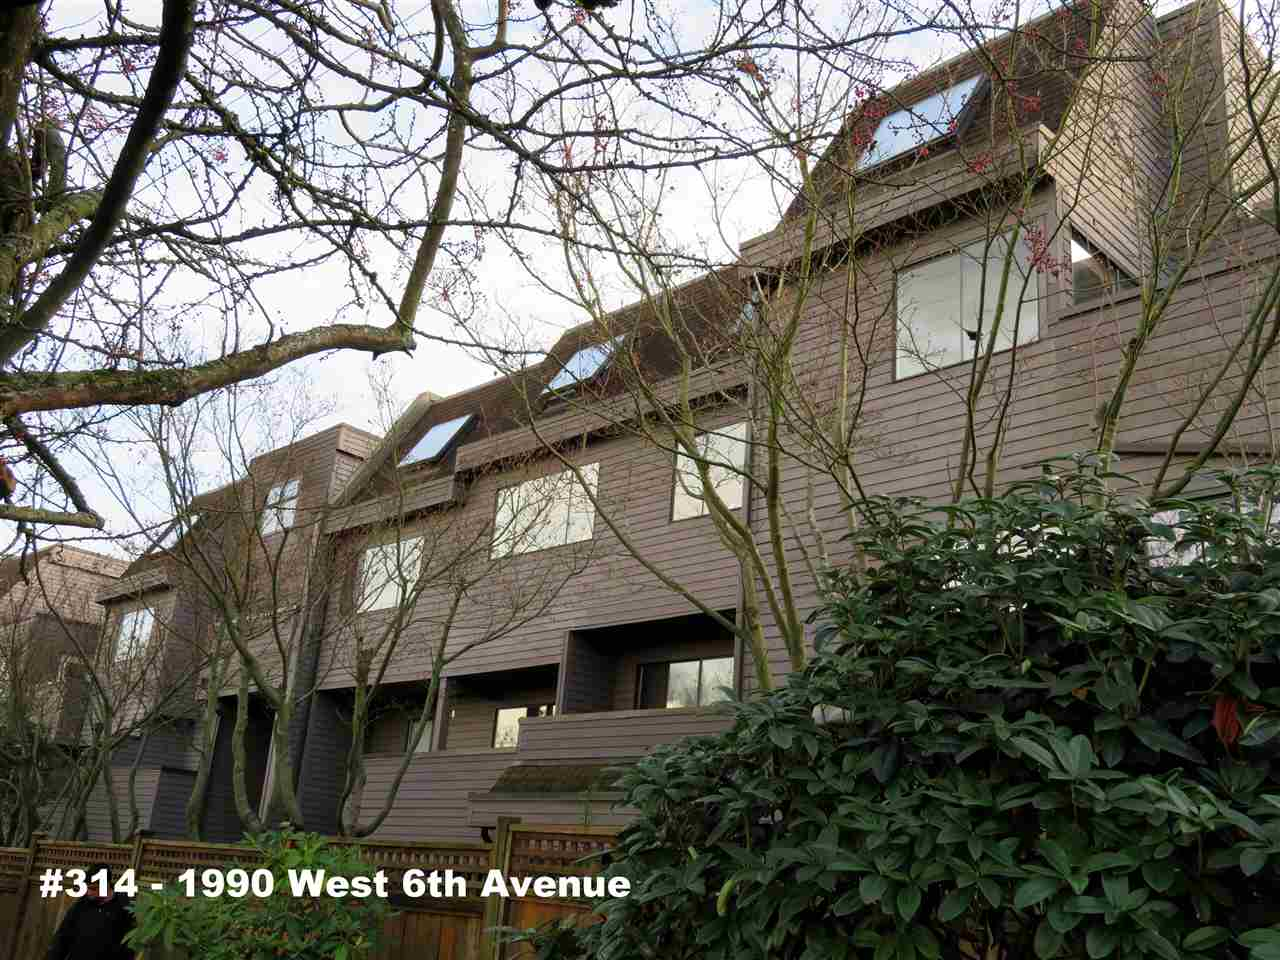 314 1990 W 6TH AVENUE, Vancouver, BC, V6J 4V4 Primary Photo